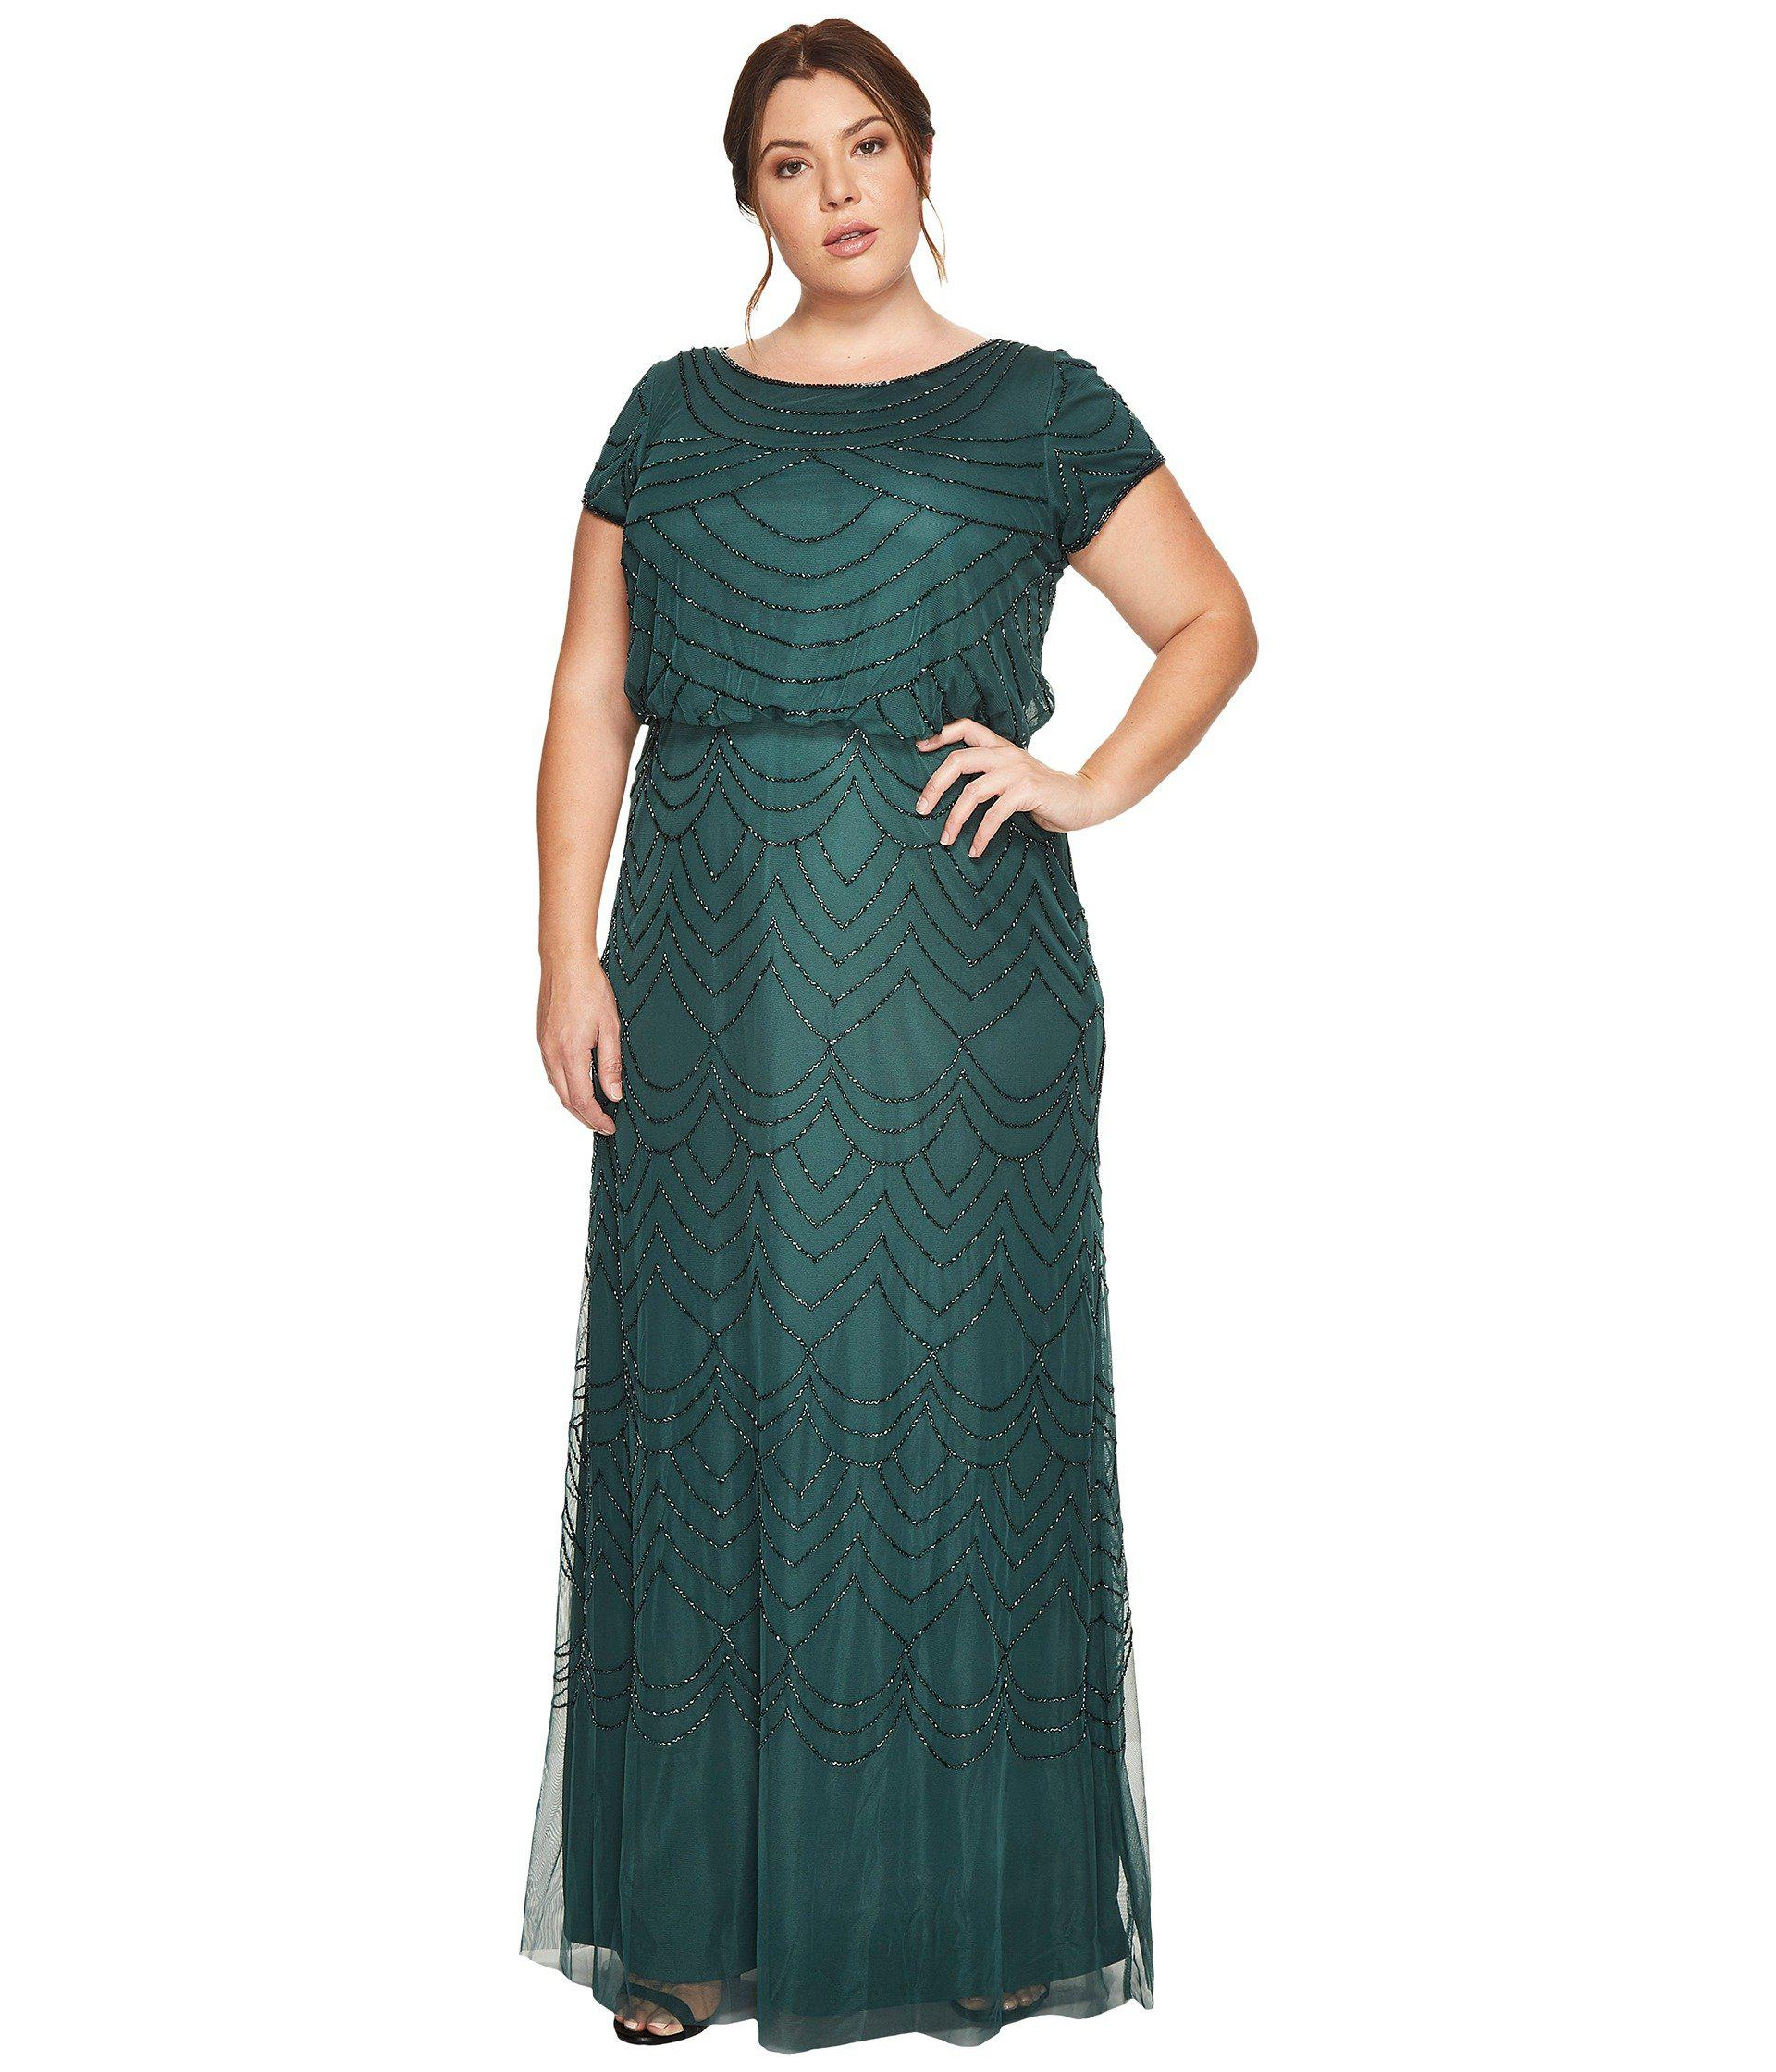 Lyst - Adrianna Papell Plus Size Short Sleeve Blouson Beaded Gown in ...